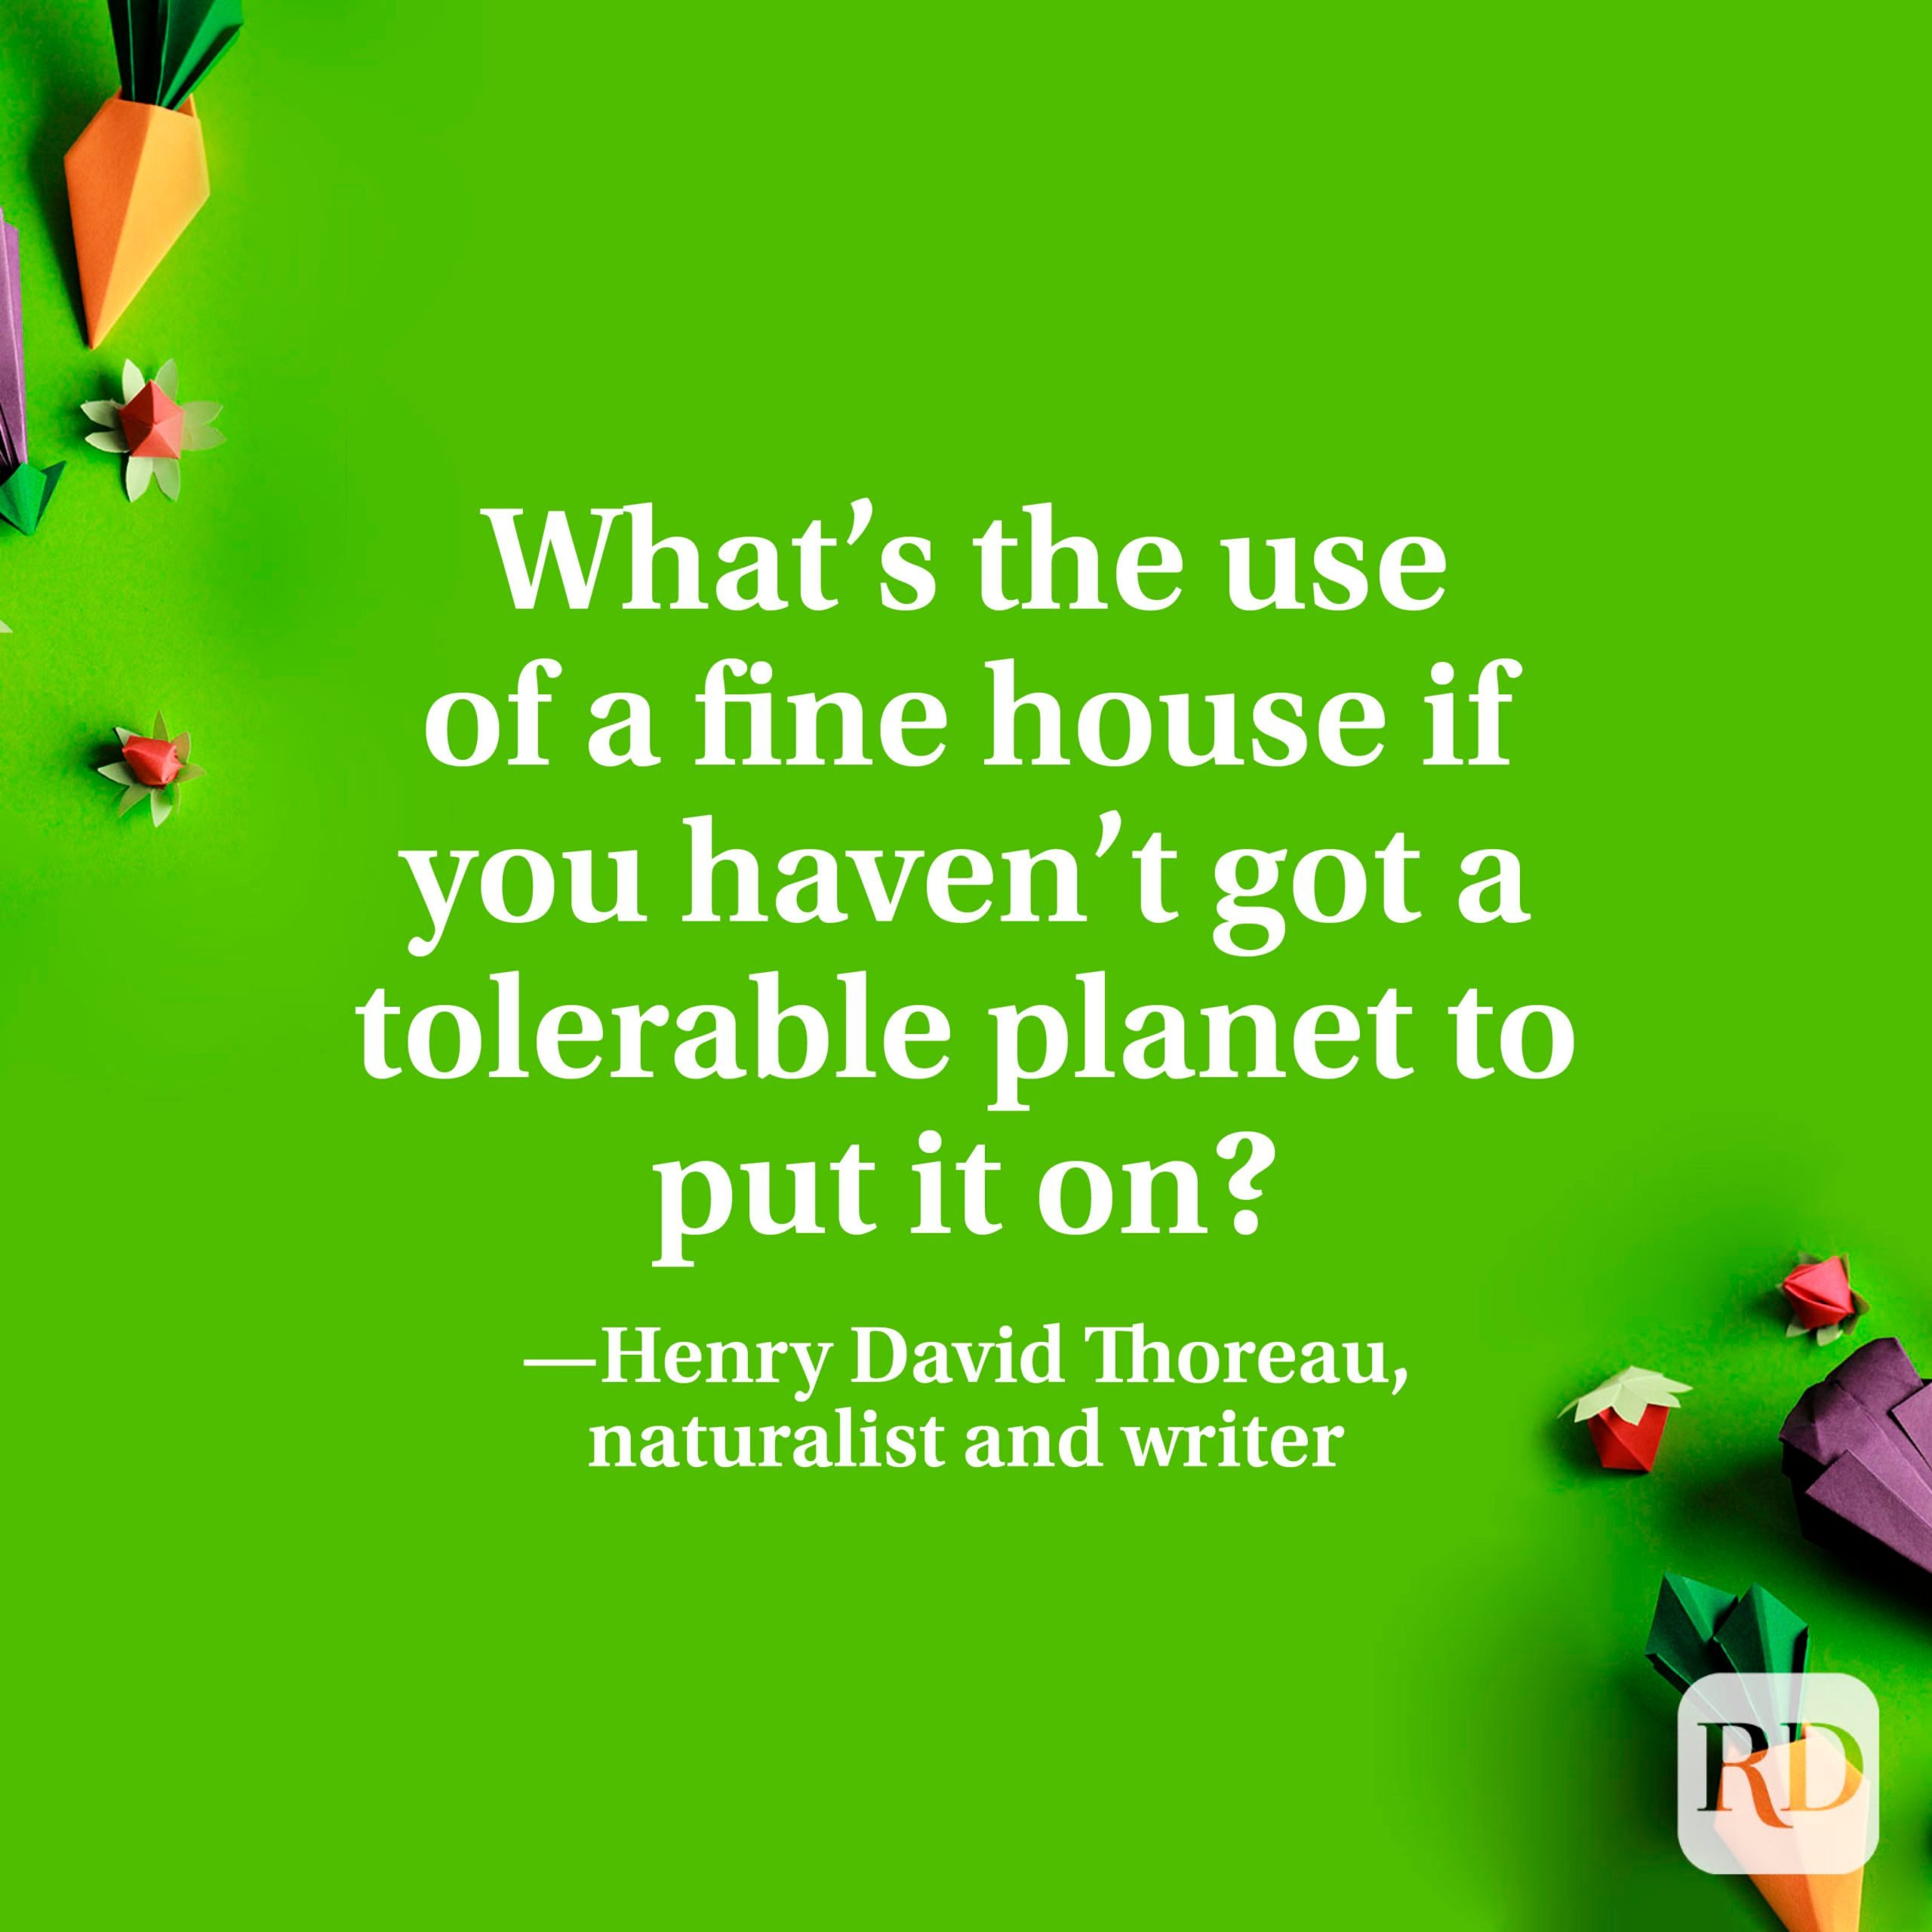 """""""What's the use of a fine house if you haven't got a tolerable planet to put it on?"""" —Henry David Thoreau, naturalist and writer"""